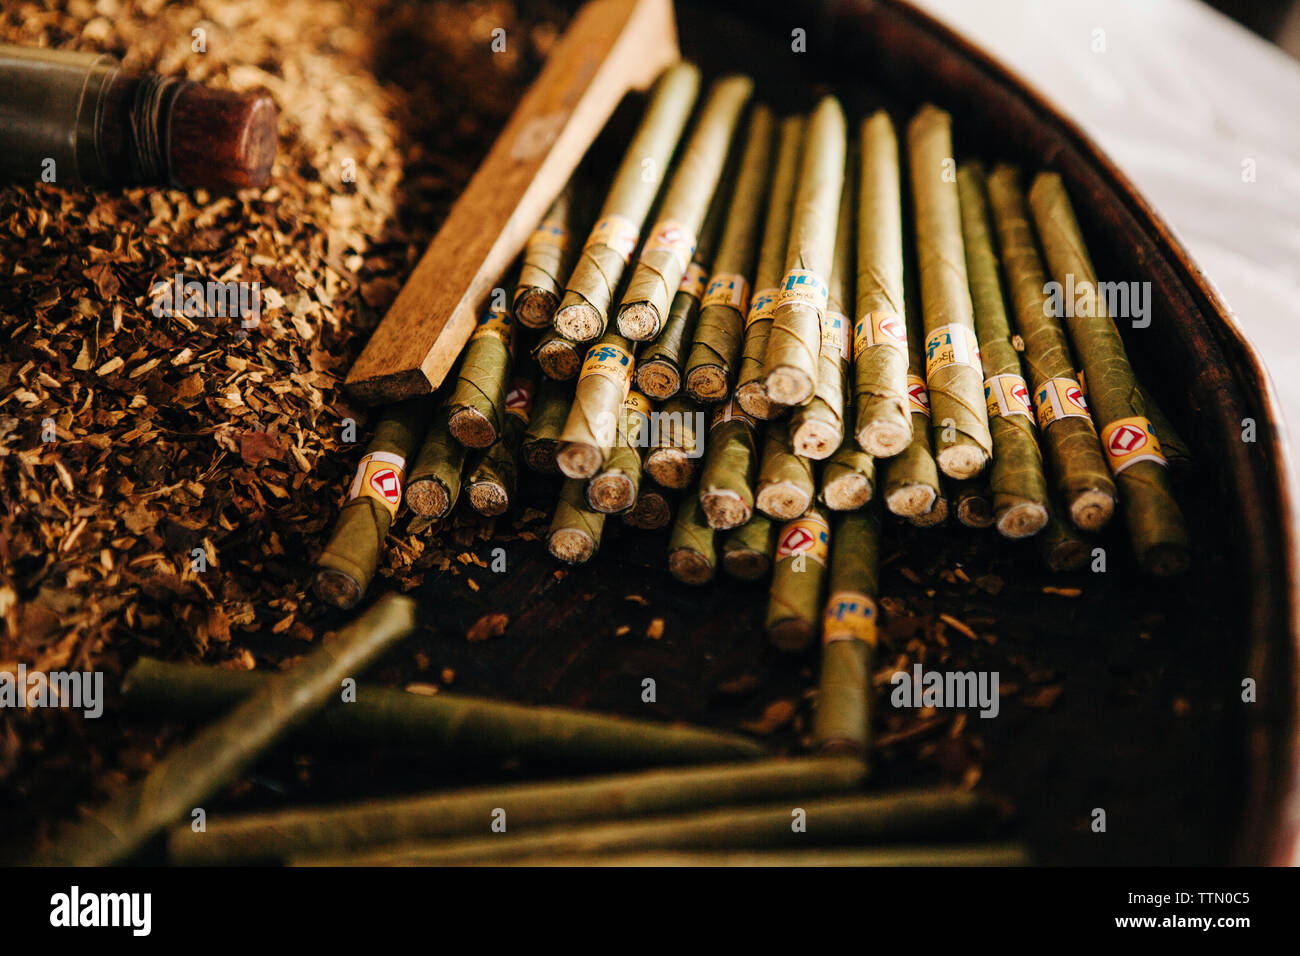 High angle view of cigars in container - Stock Image